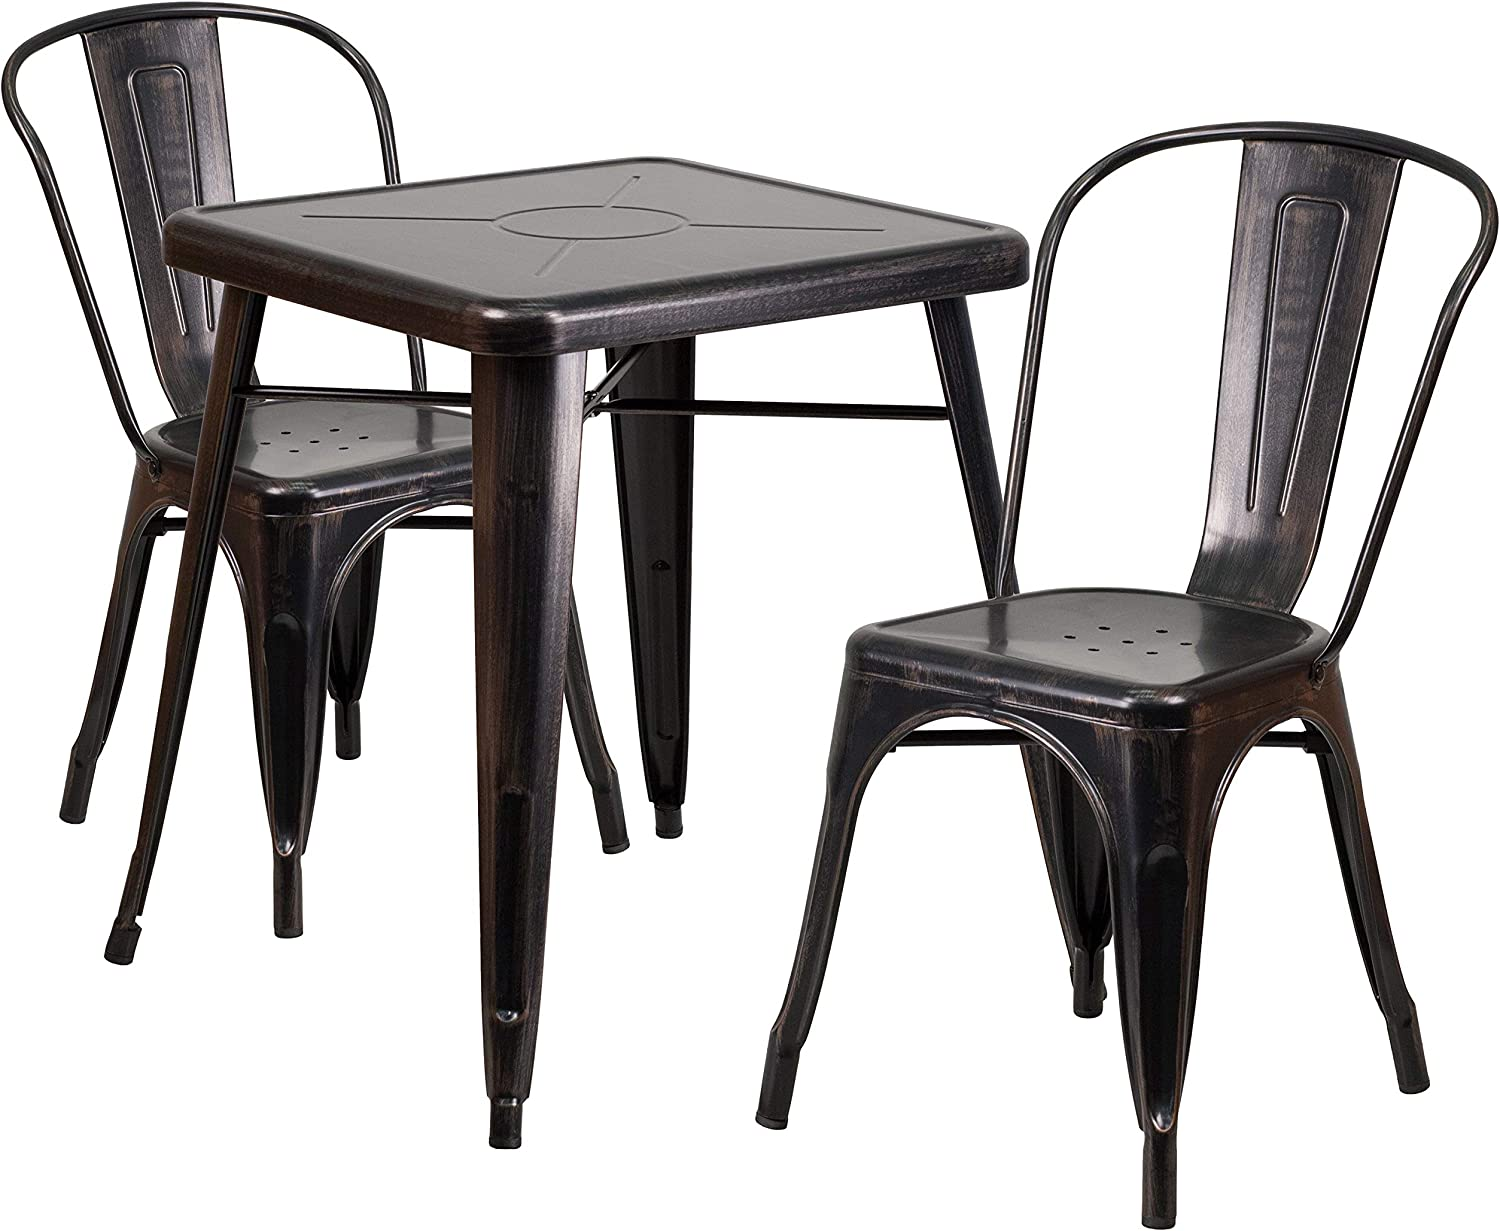 ANVA5-OAK-C 5 PC Dining room set – Dining Table and 4 Dining Chairs